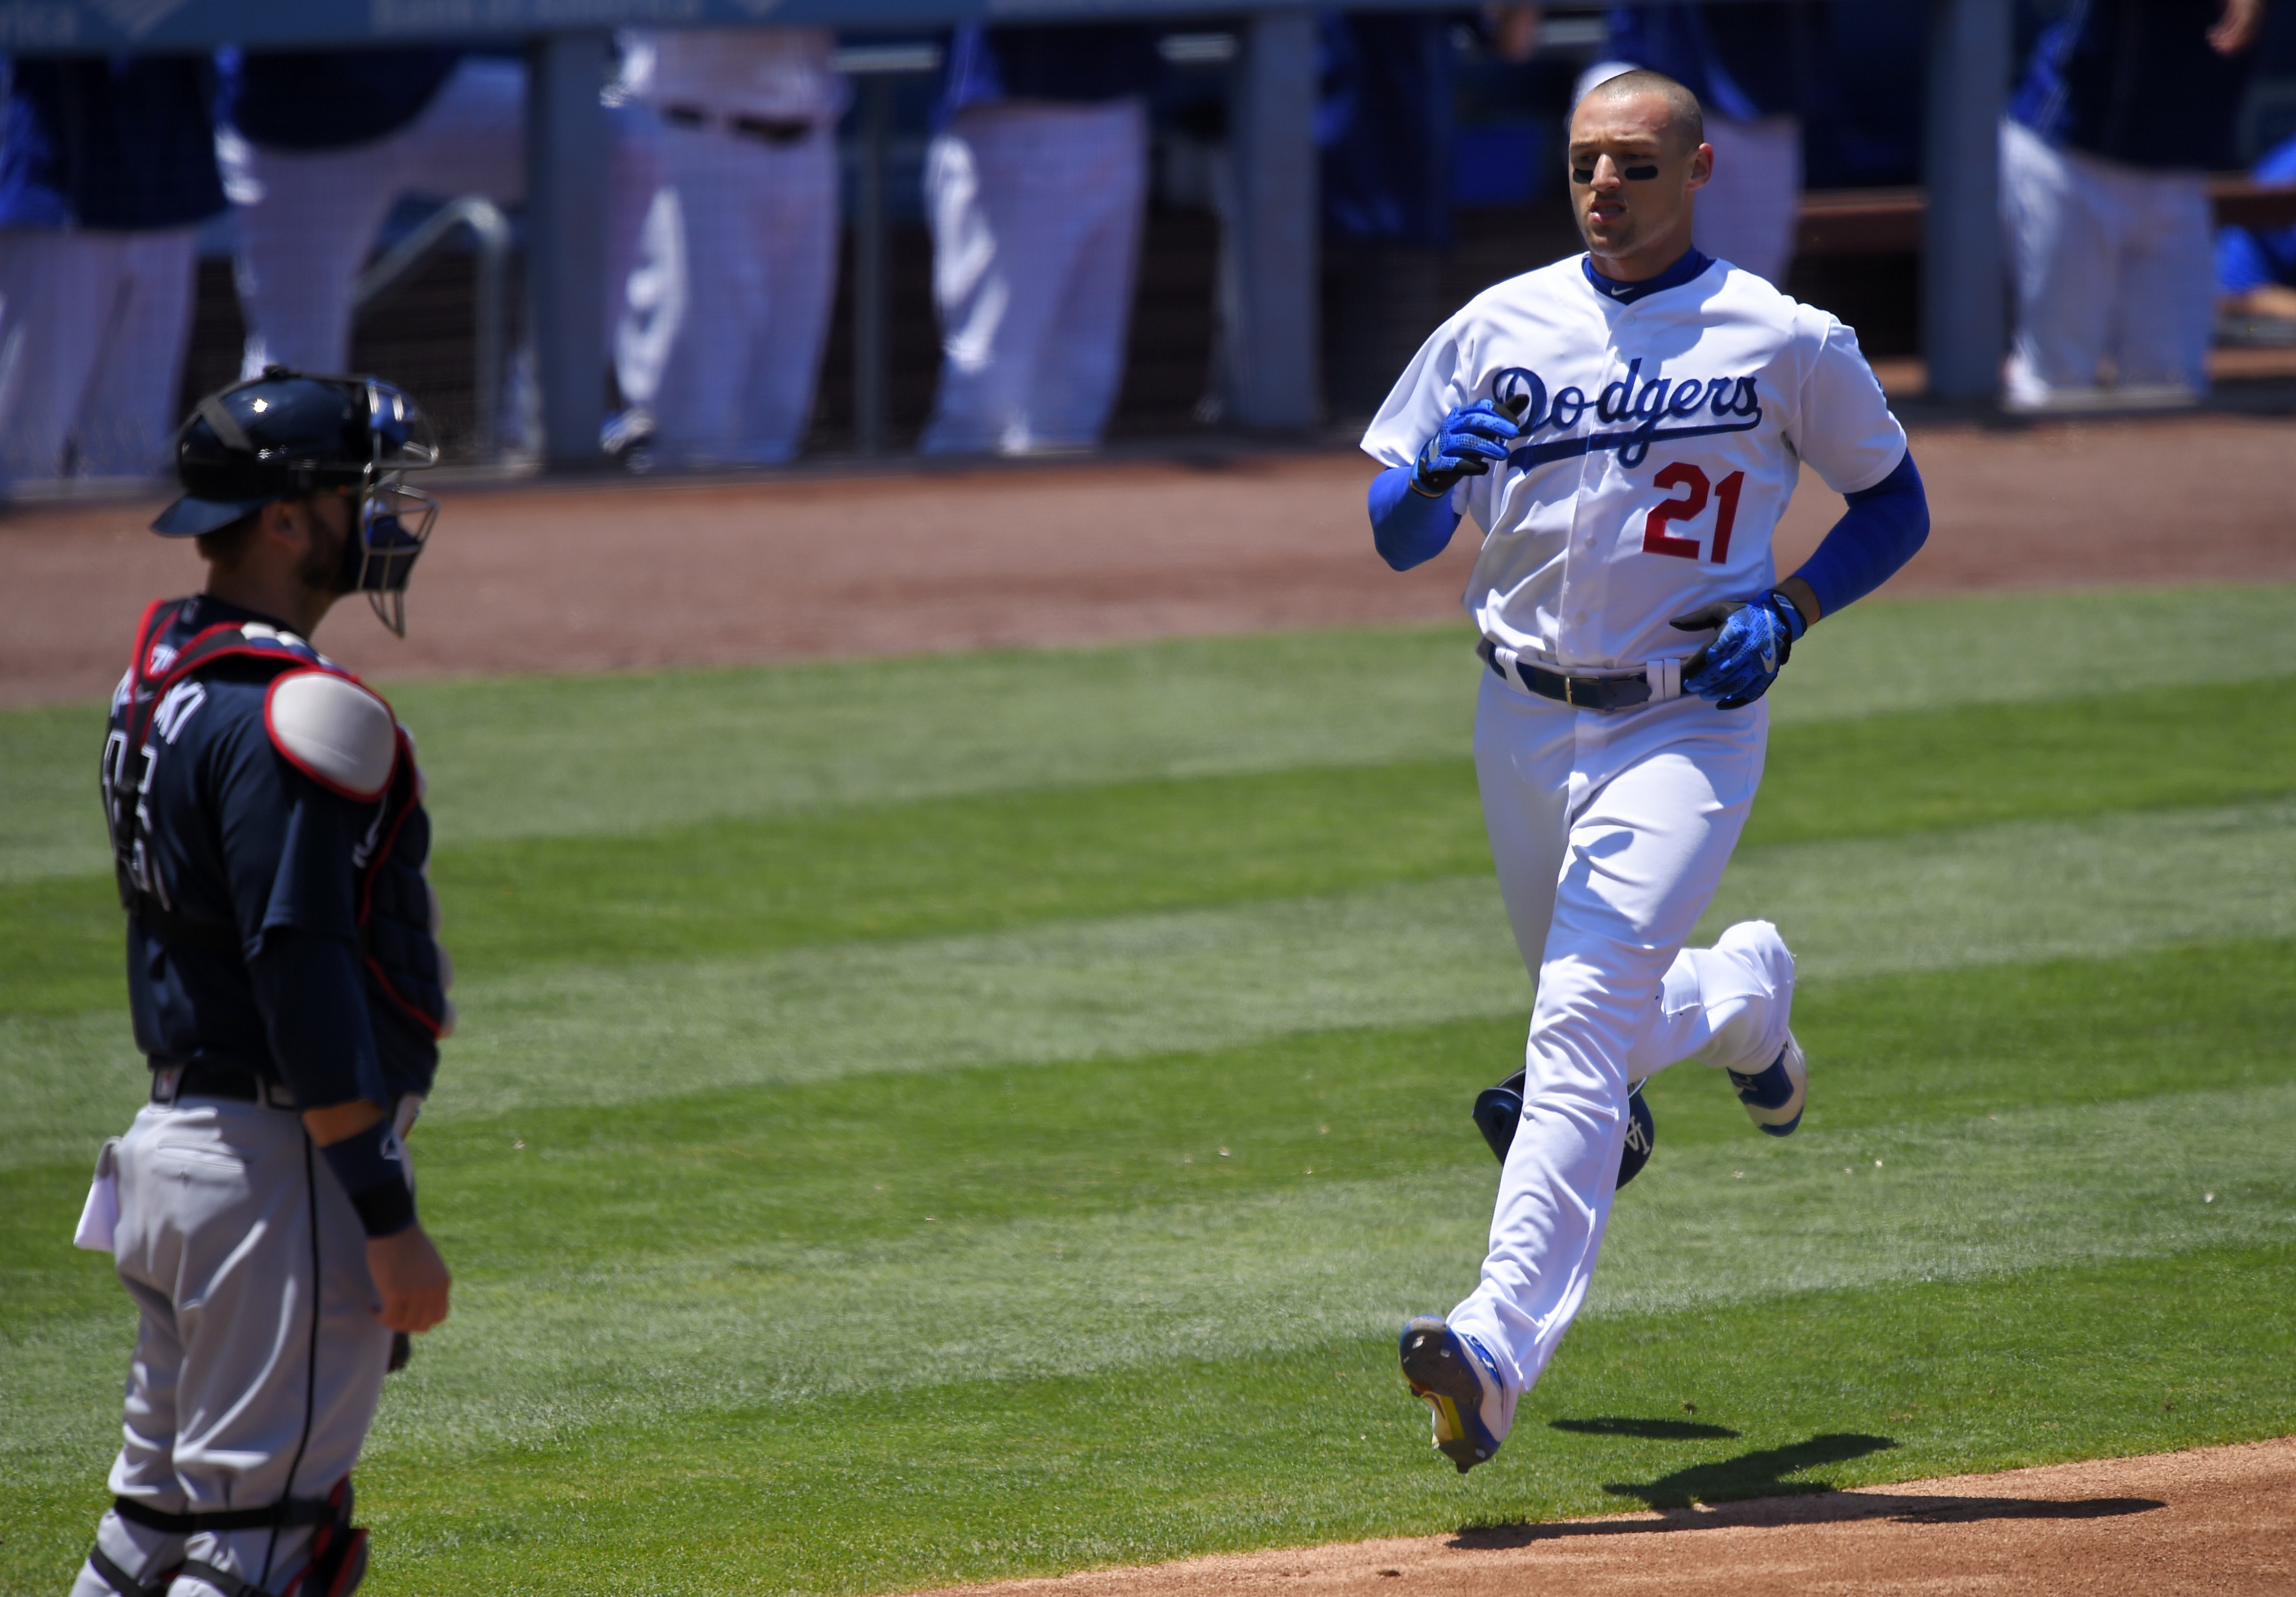 Los Angeles Dodgers' Trayce Thompson, right, heads home while Atlanta Braves catcher A.J. Pierzynski stands by as he scores on a single by Joc Pederson during the third inning of a baseball game, Sunday, June 5, 2016, in Los Angeles, Calif. (AP Photo/Mark